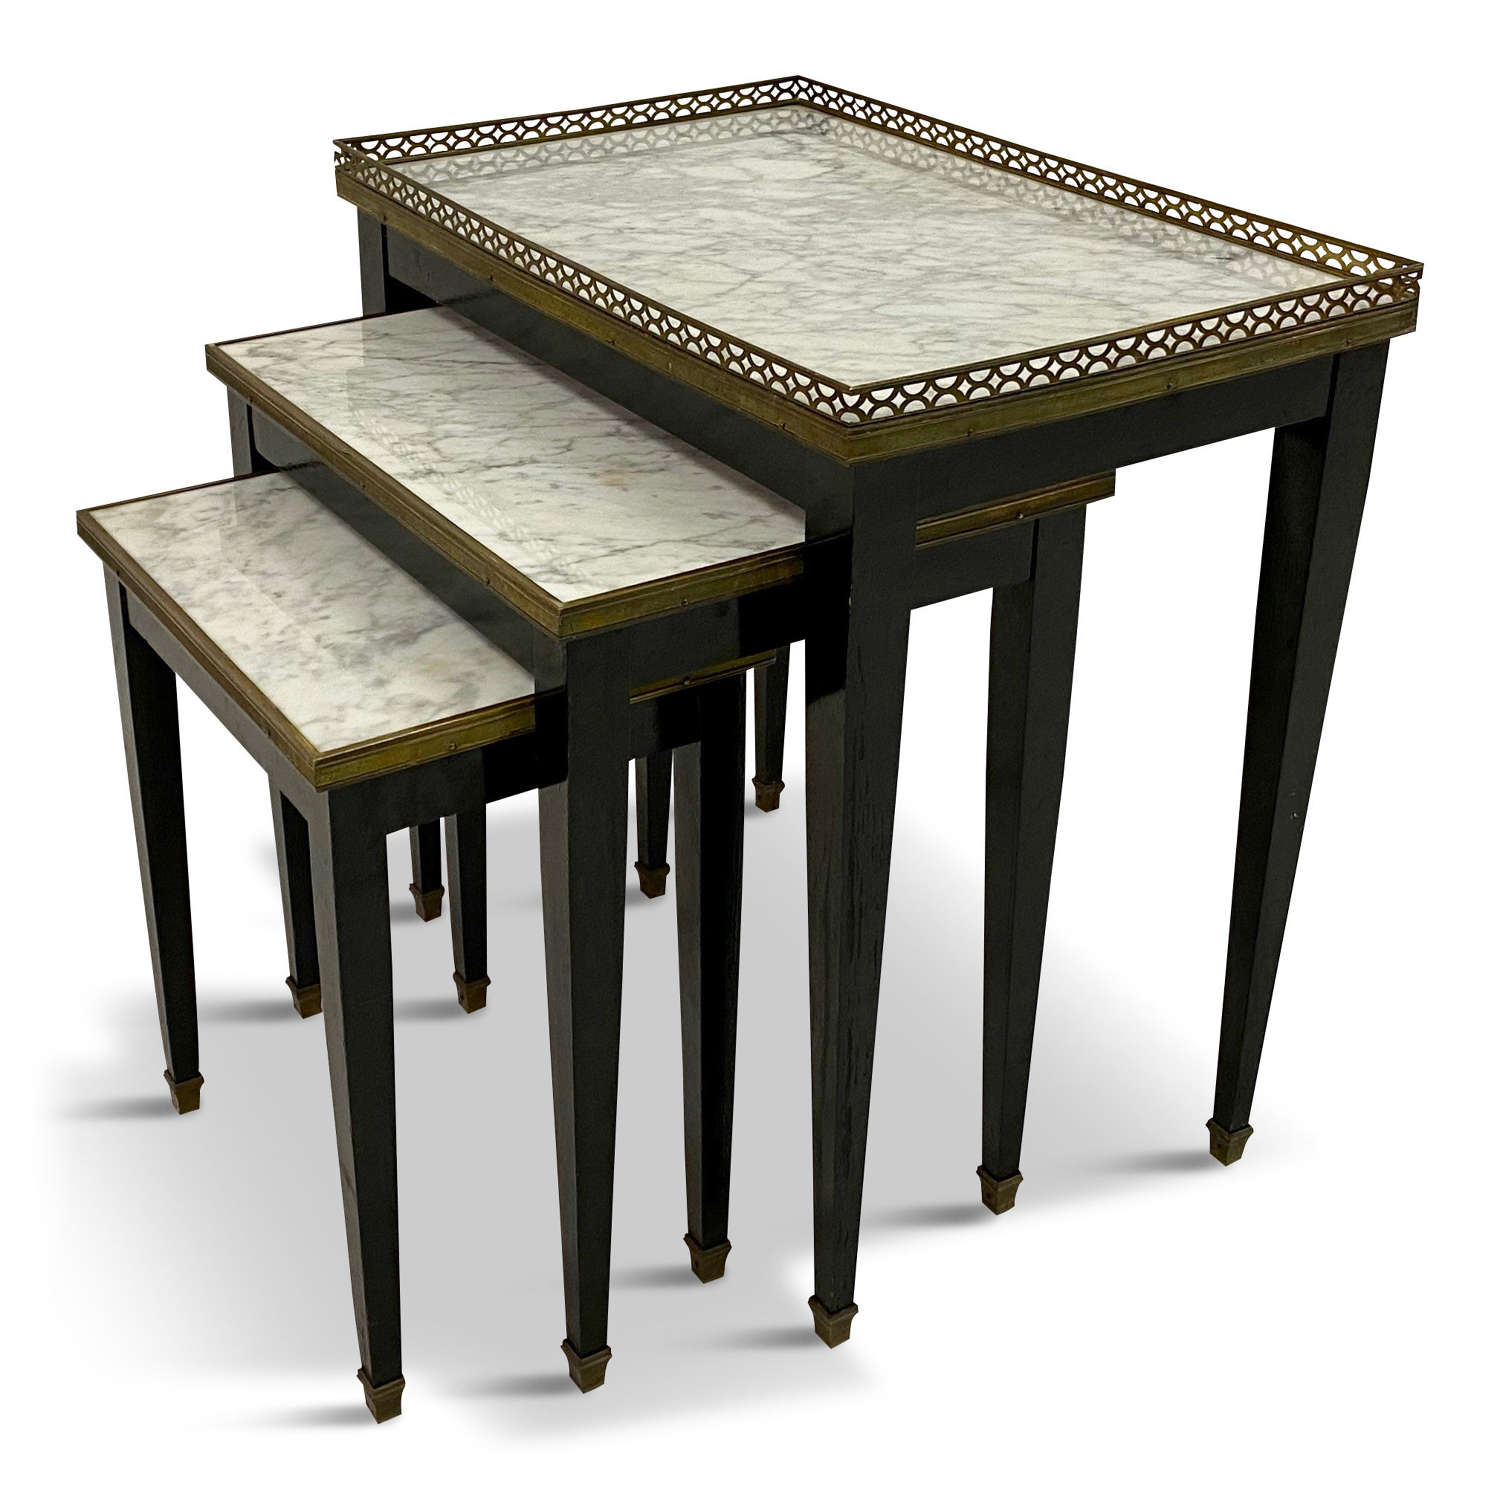 A French marble and brass nest of tables